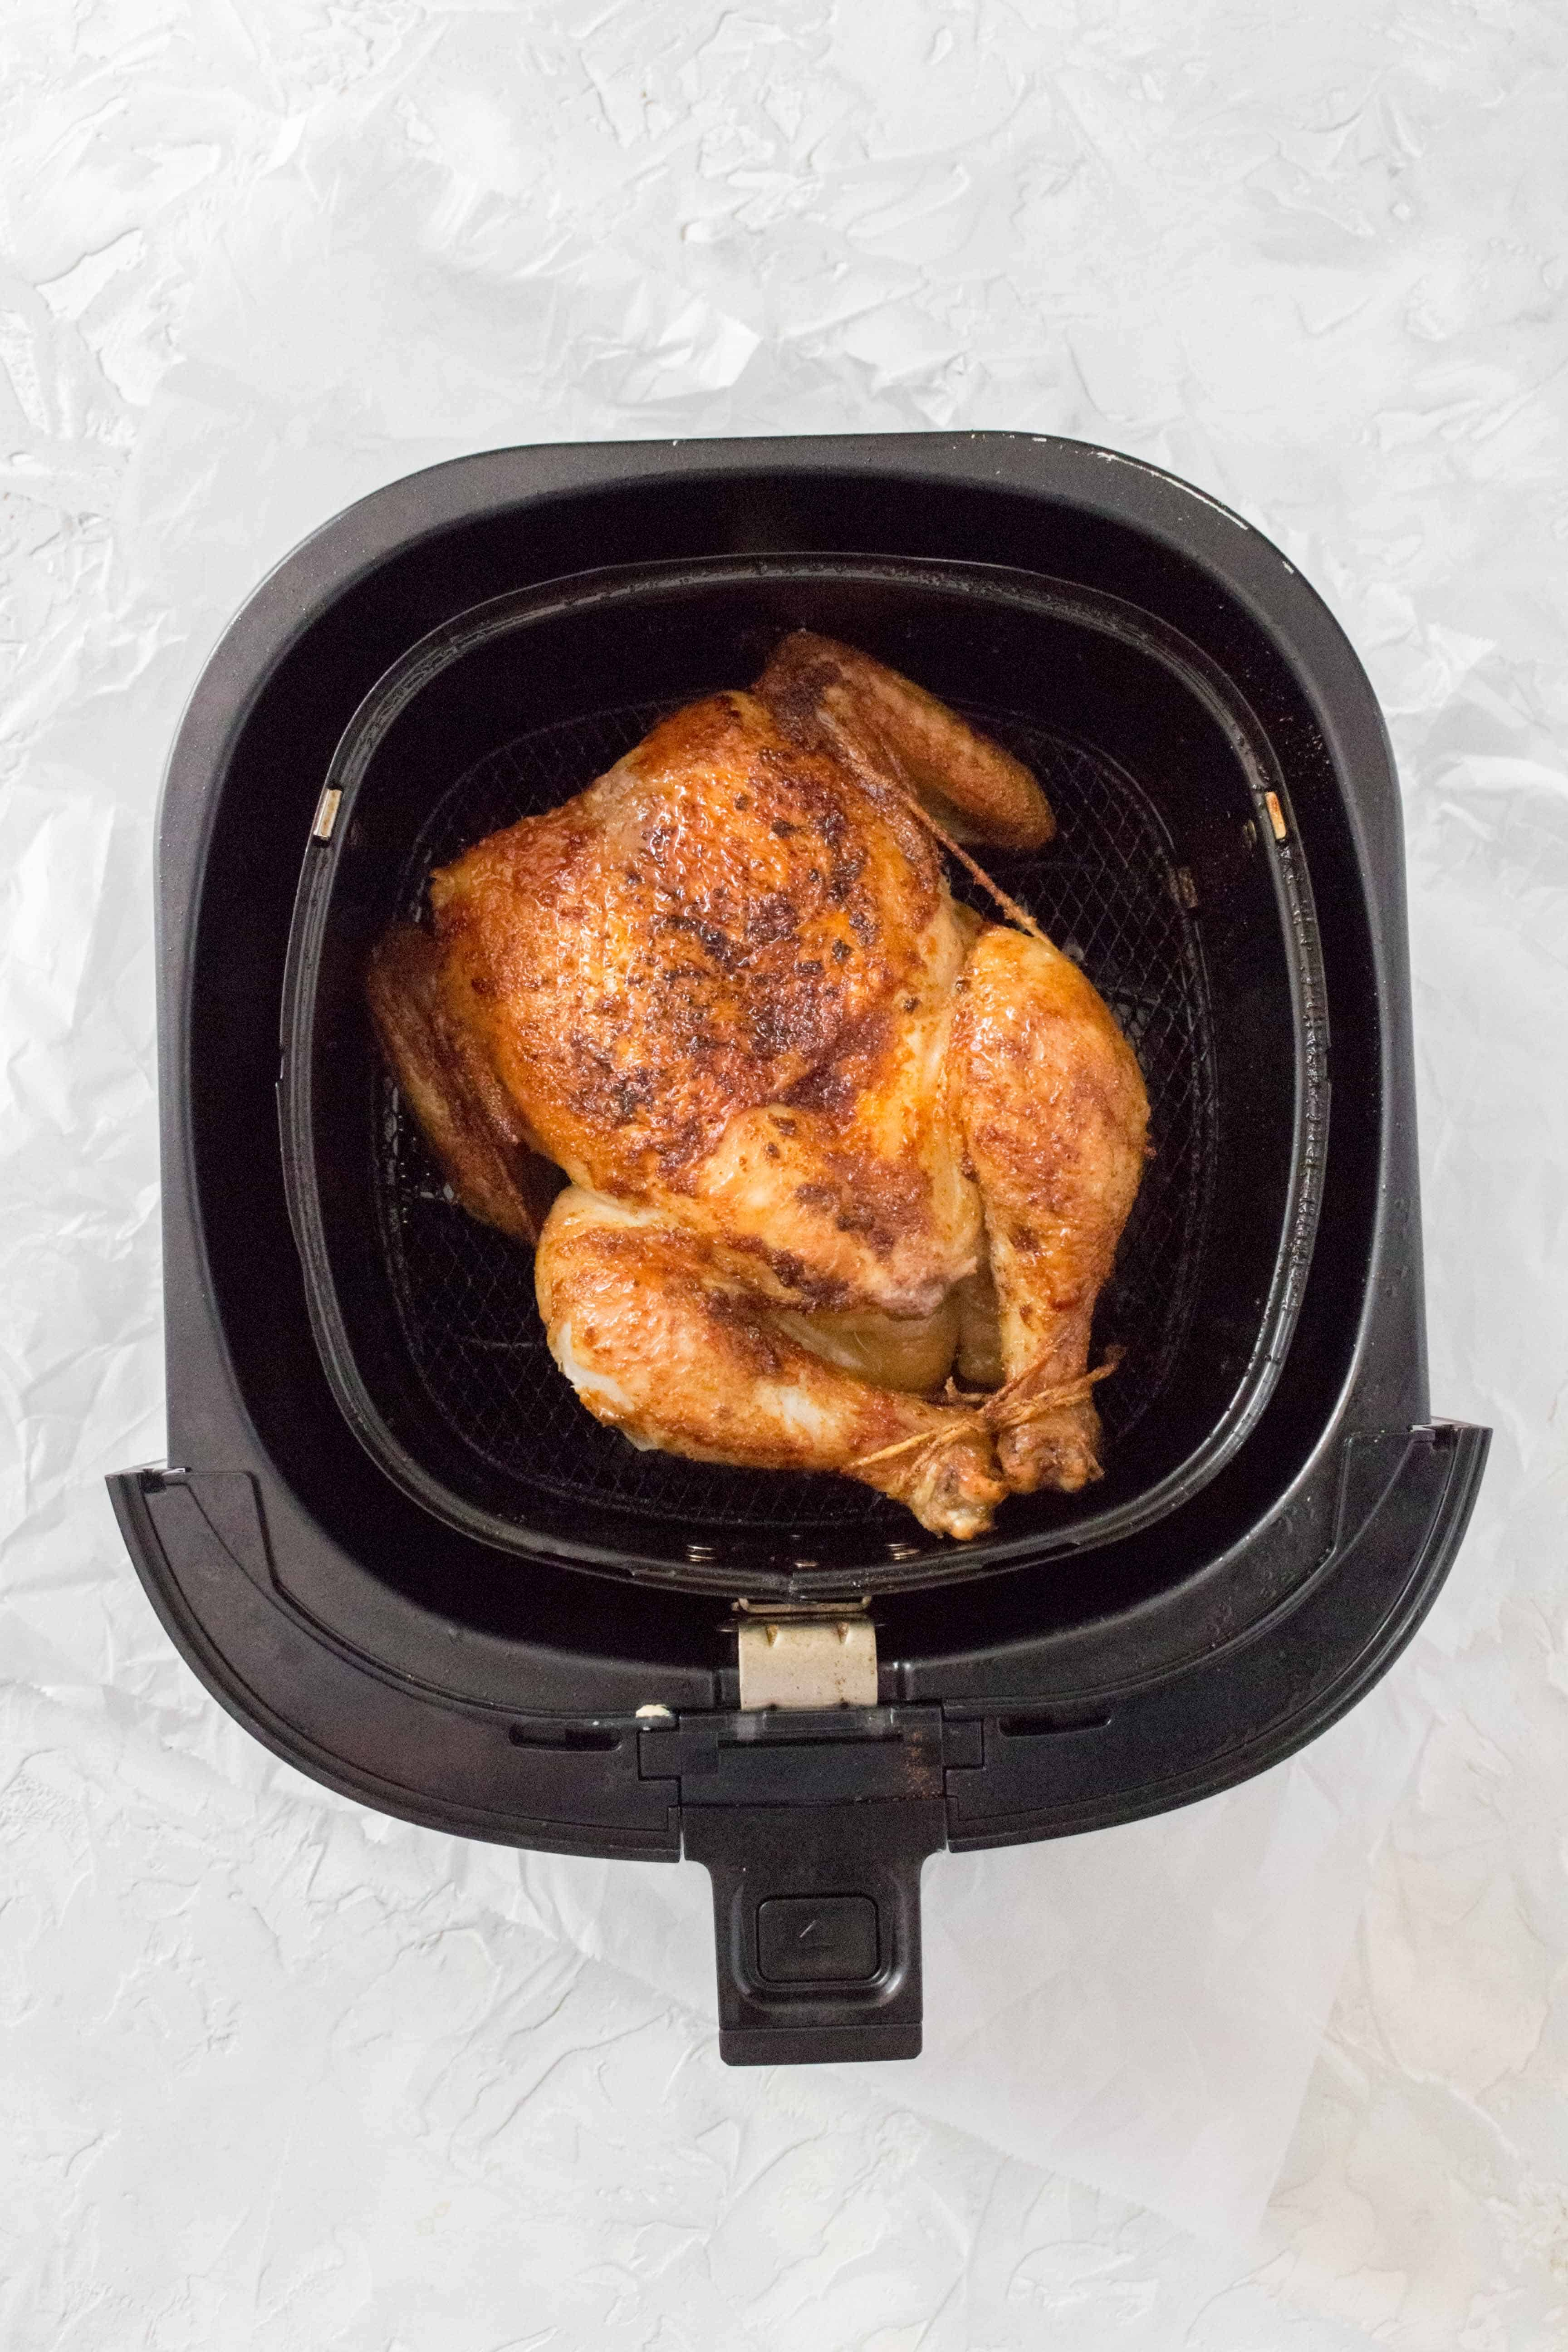 Got an air fryer and want a juicy and tender roast chicken? Perfectly moist with crispy skin, make this whole chicken in an air fryer in under 30 minutes.